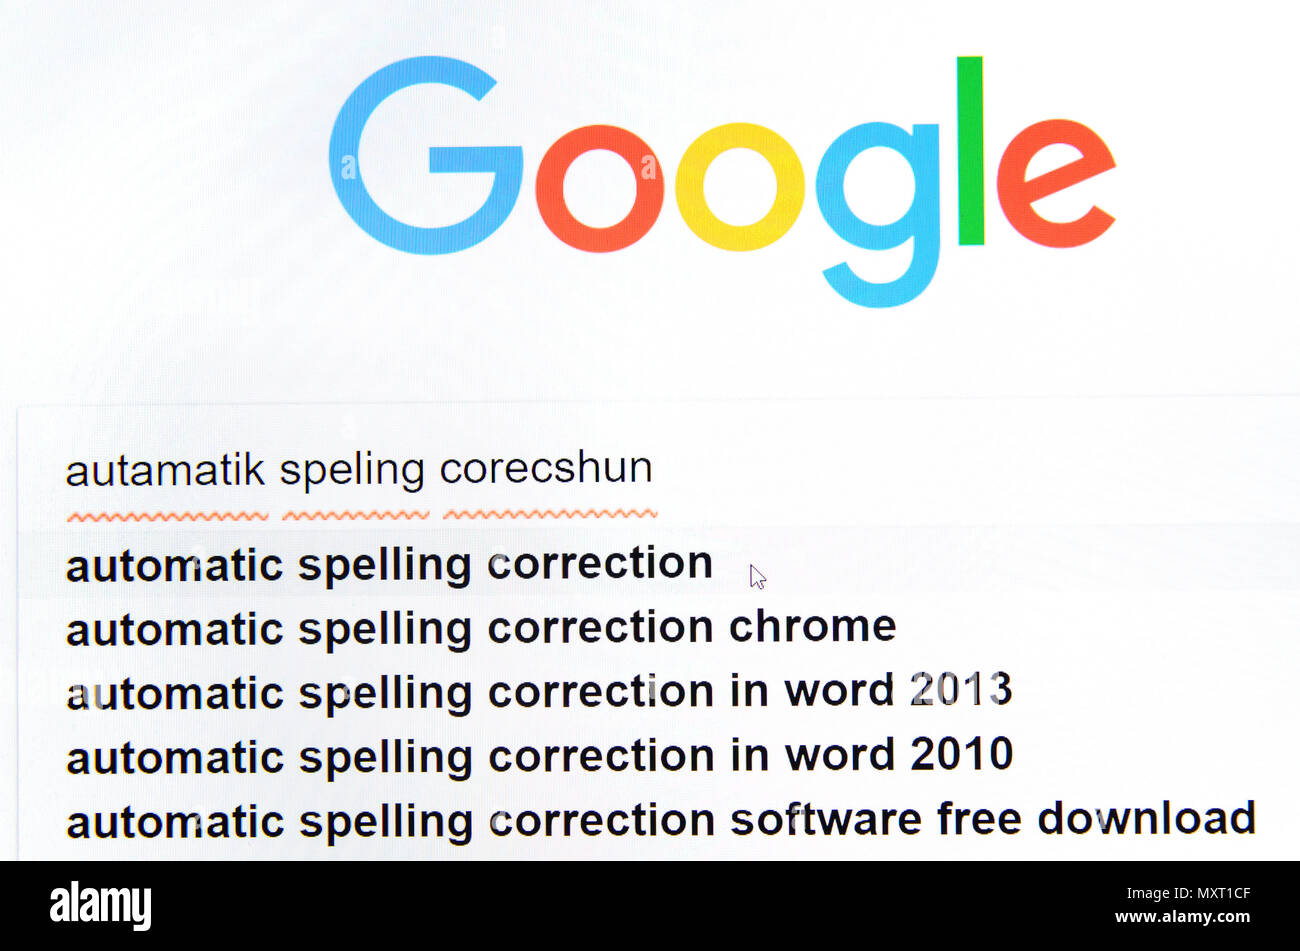 Computer screenshot: automatic spelling correction - Stock Image